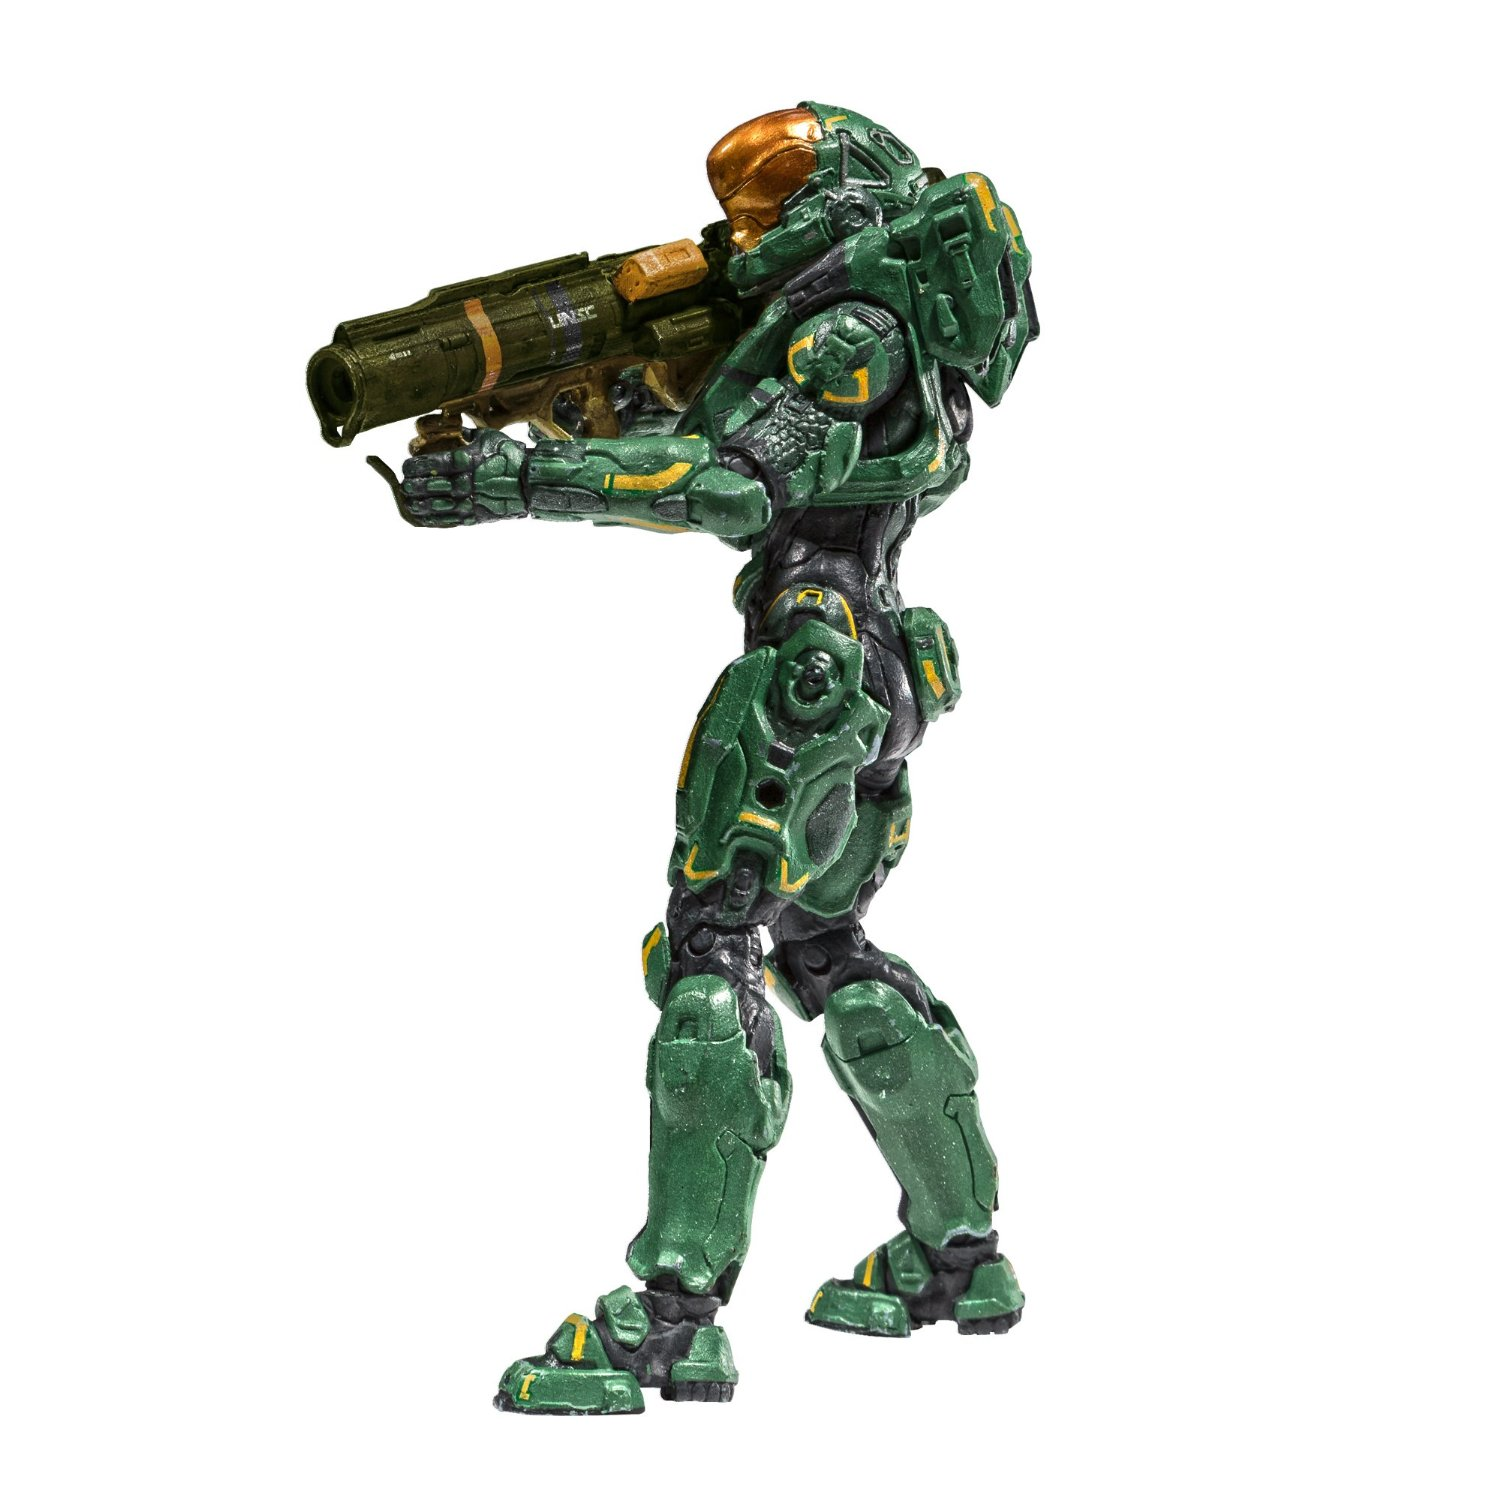 2.8  UNSC Mongoose with Blue Spartan Soldier and Warrior. Action- & Spielfiguren HALO 4 Combat Edition